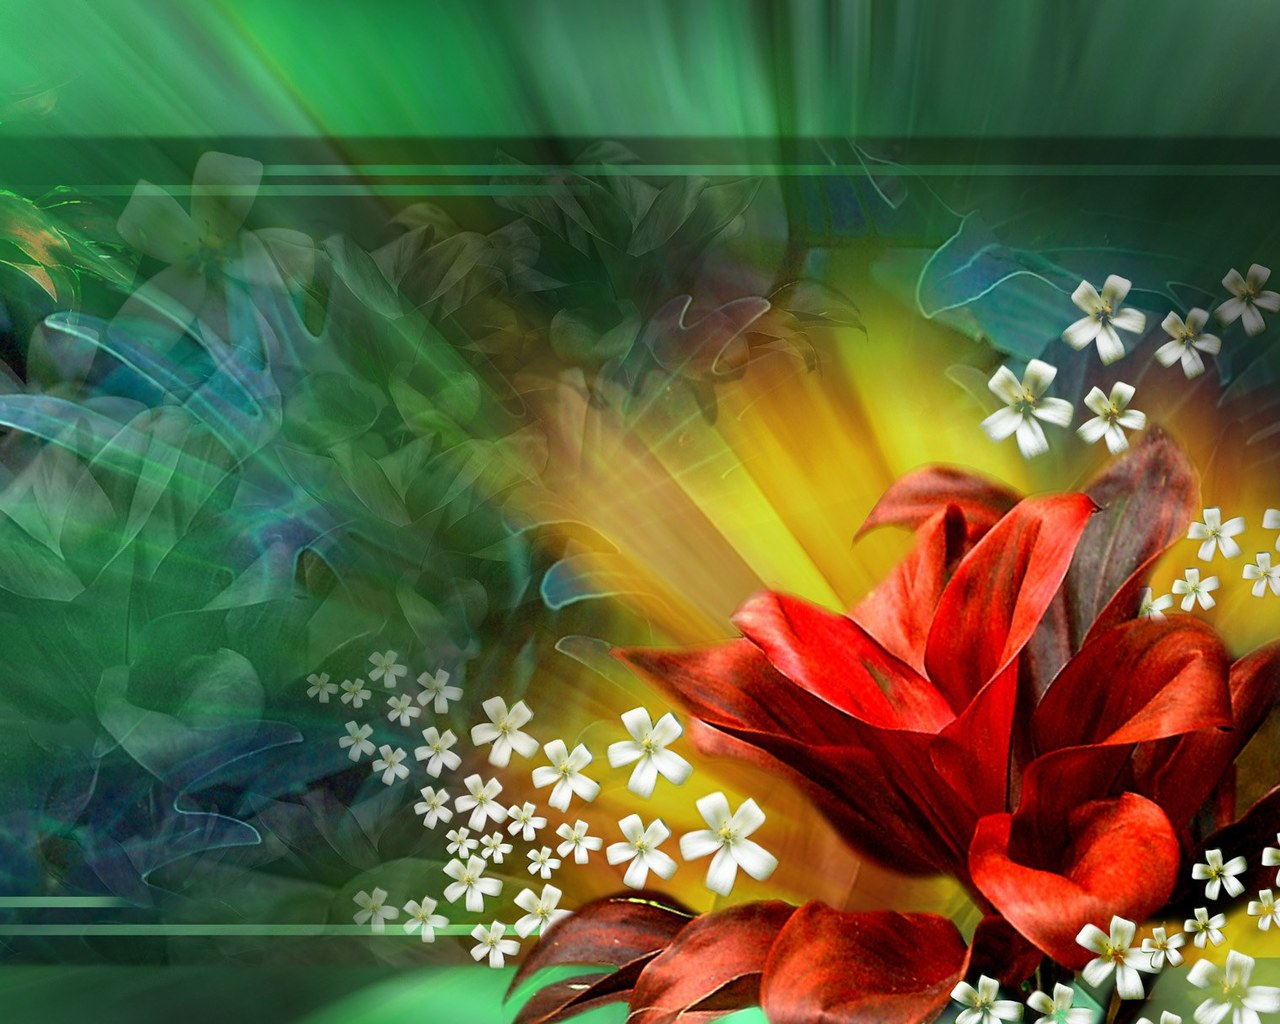 Pc Desktop 3D Wallpaper Free Download